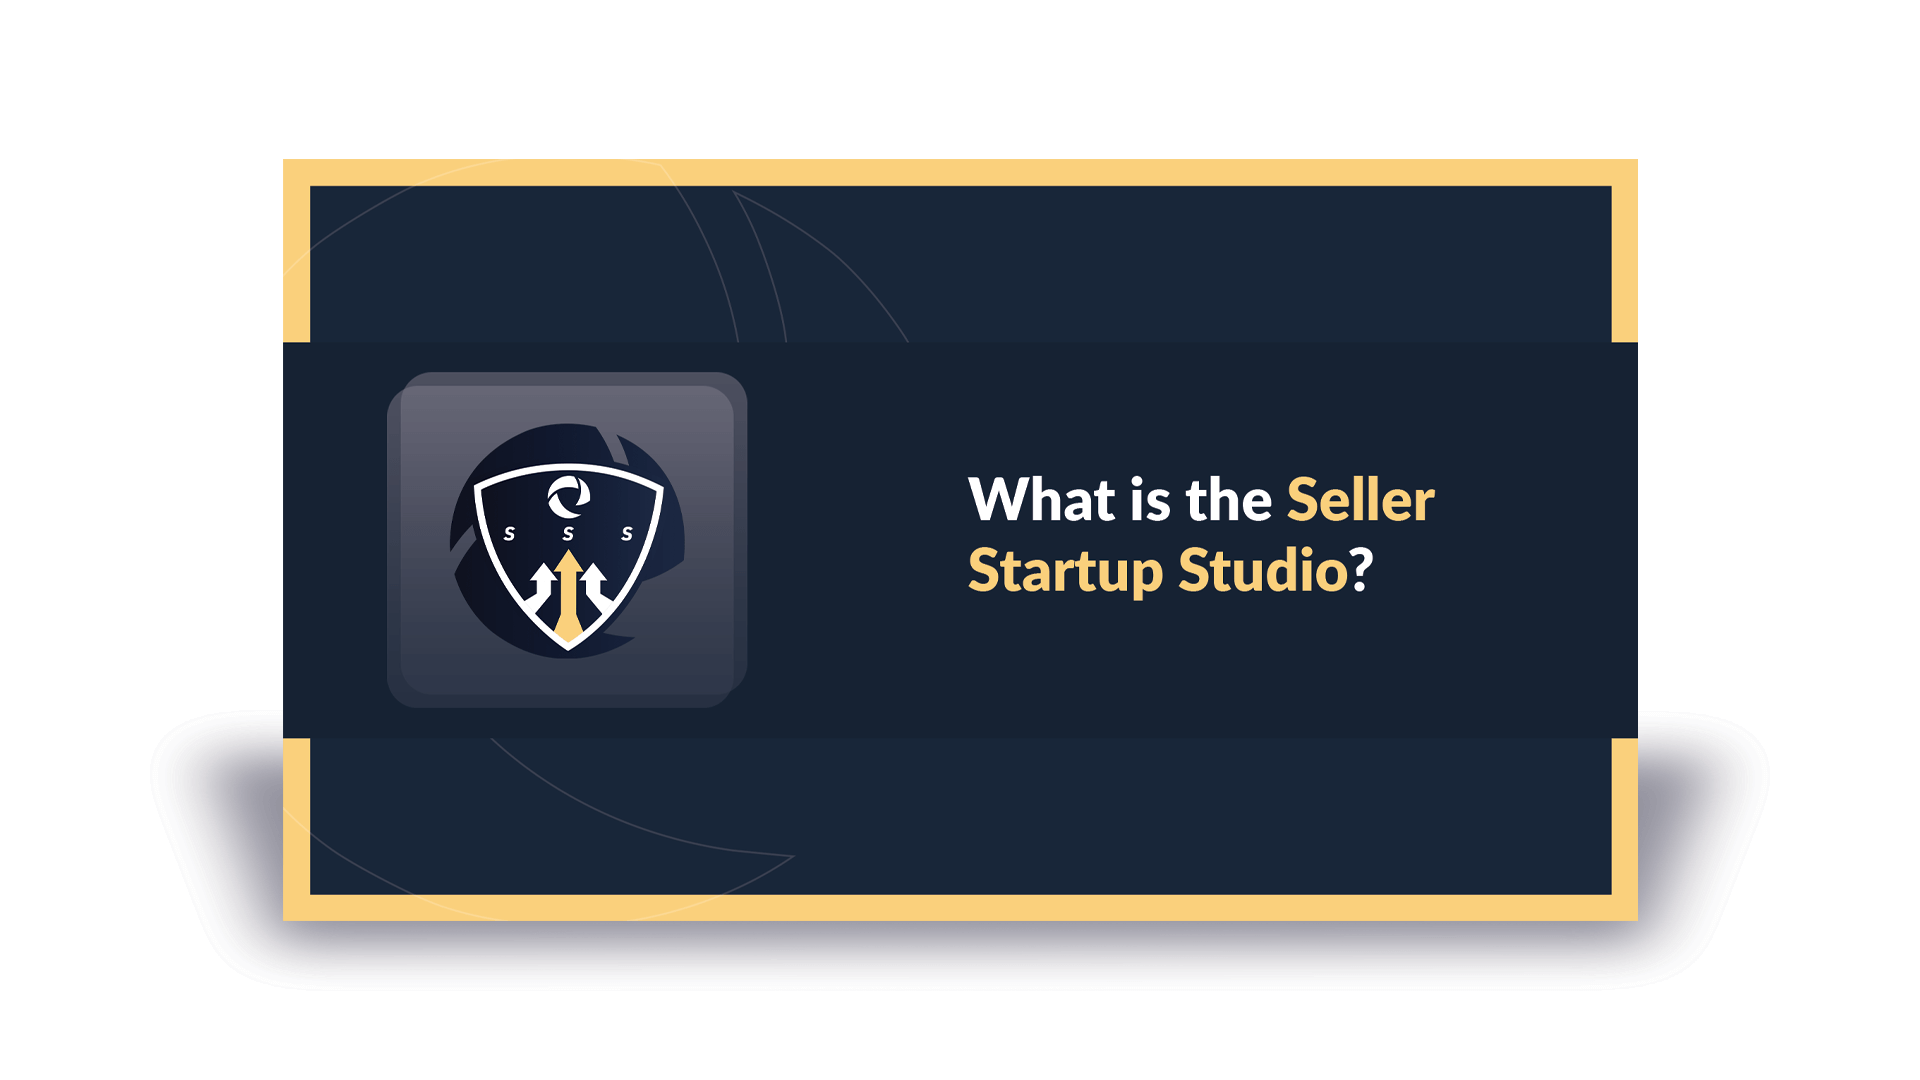 What is The Seller Startup Studio?